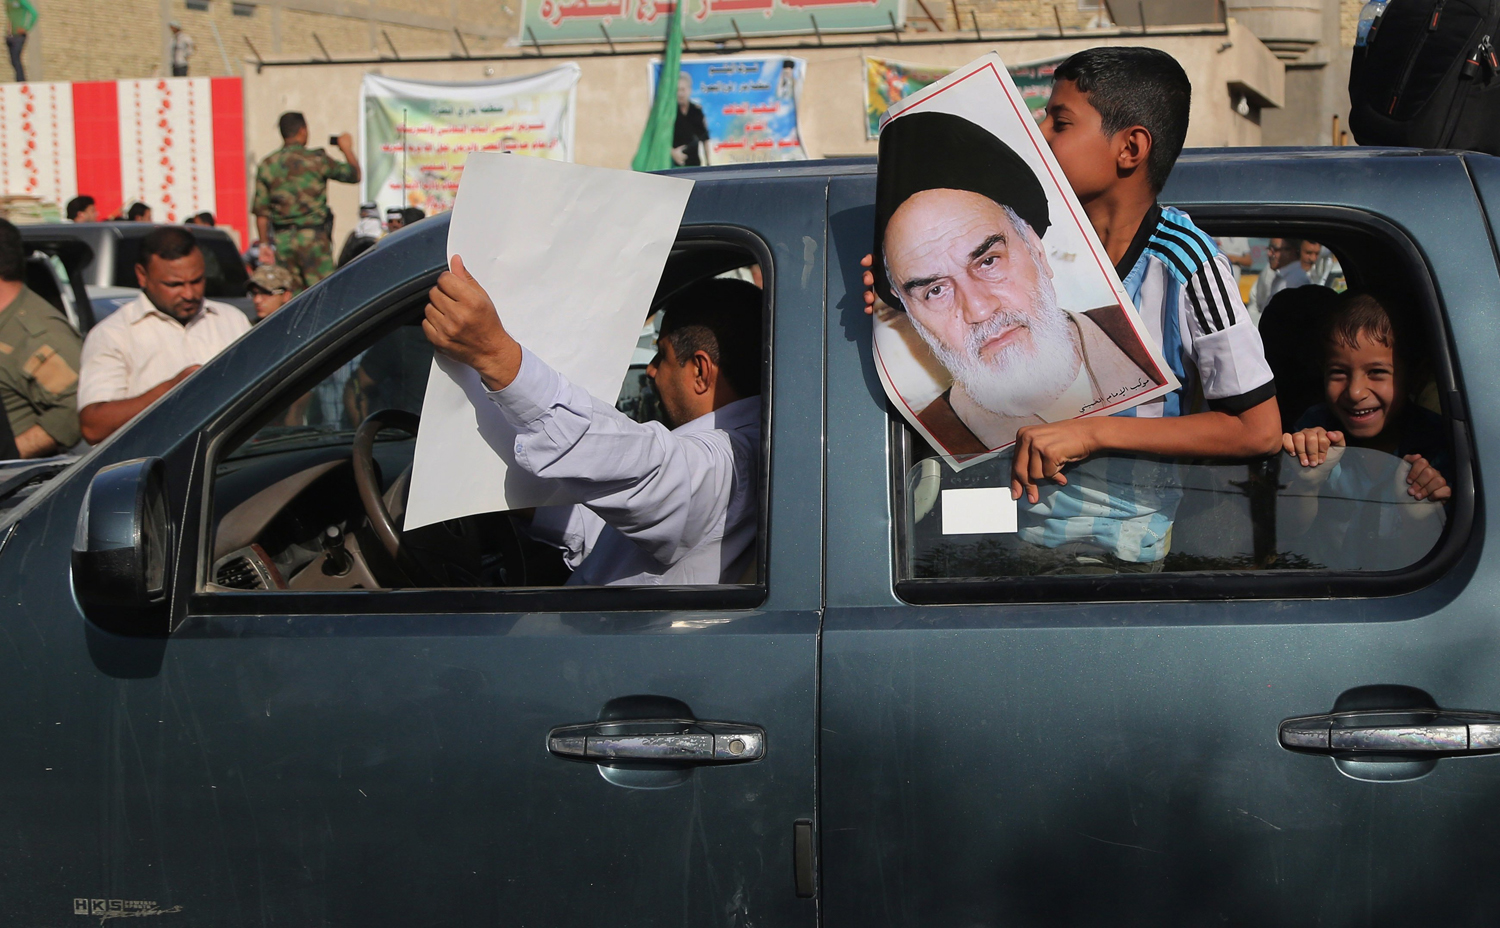 People hold posters showing Iran's spiritual leaders Ayatollah Khomeini, while Iraqi Shiite fighters deploy with their weapons in Basra,  June 14.